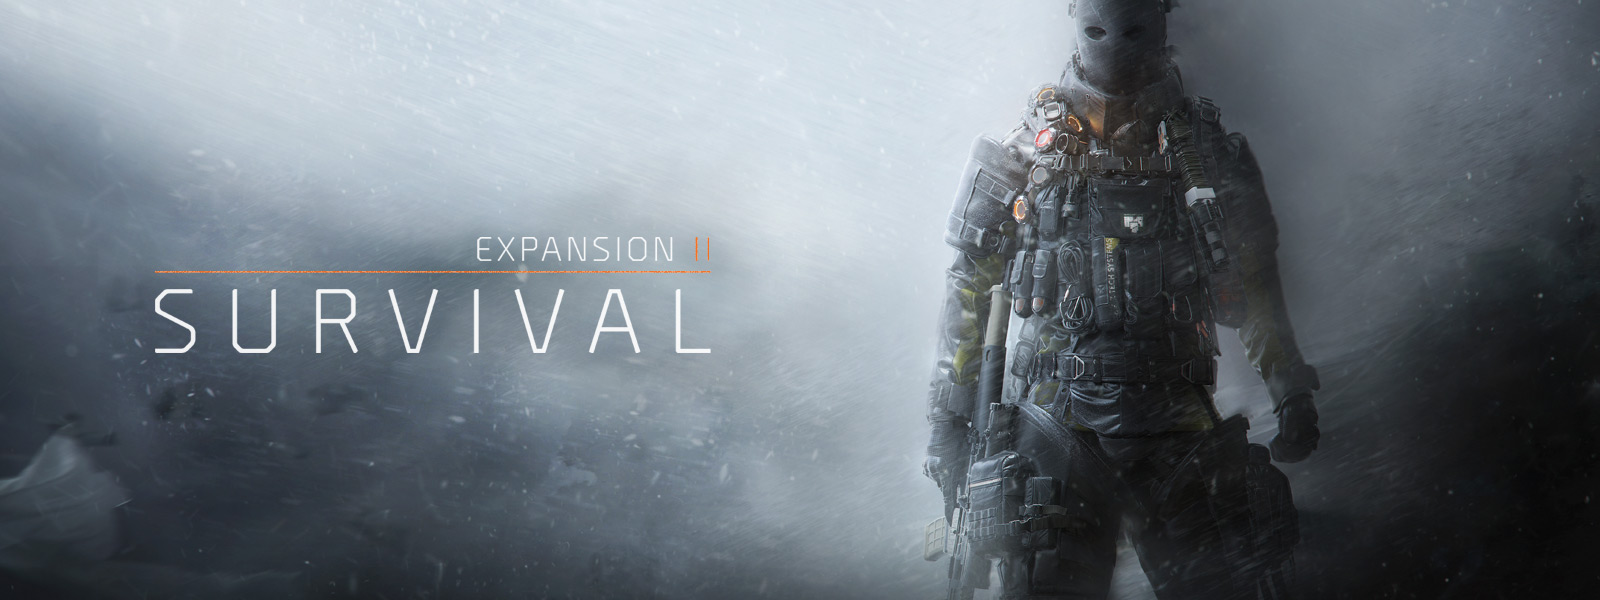 Expansion II: Survival, a man in full gear stands in a blizzard